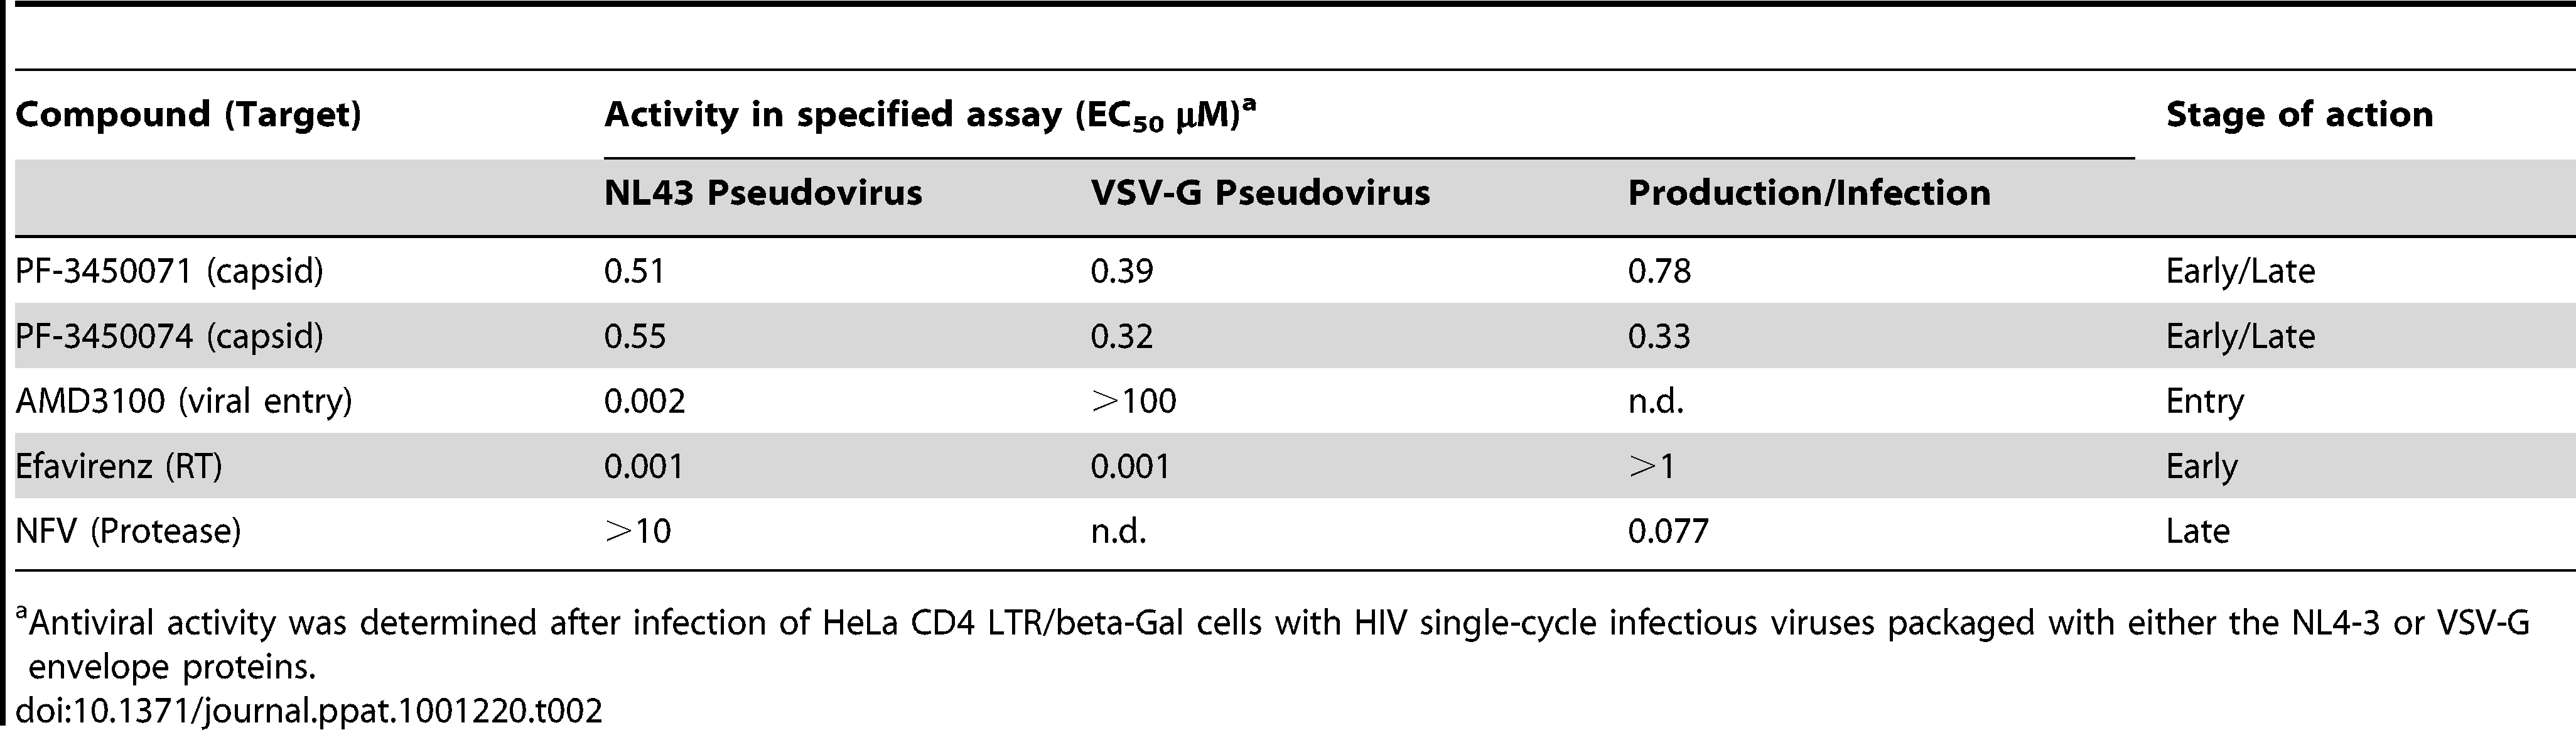 Activity of antiviral compounds in selected assays.